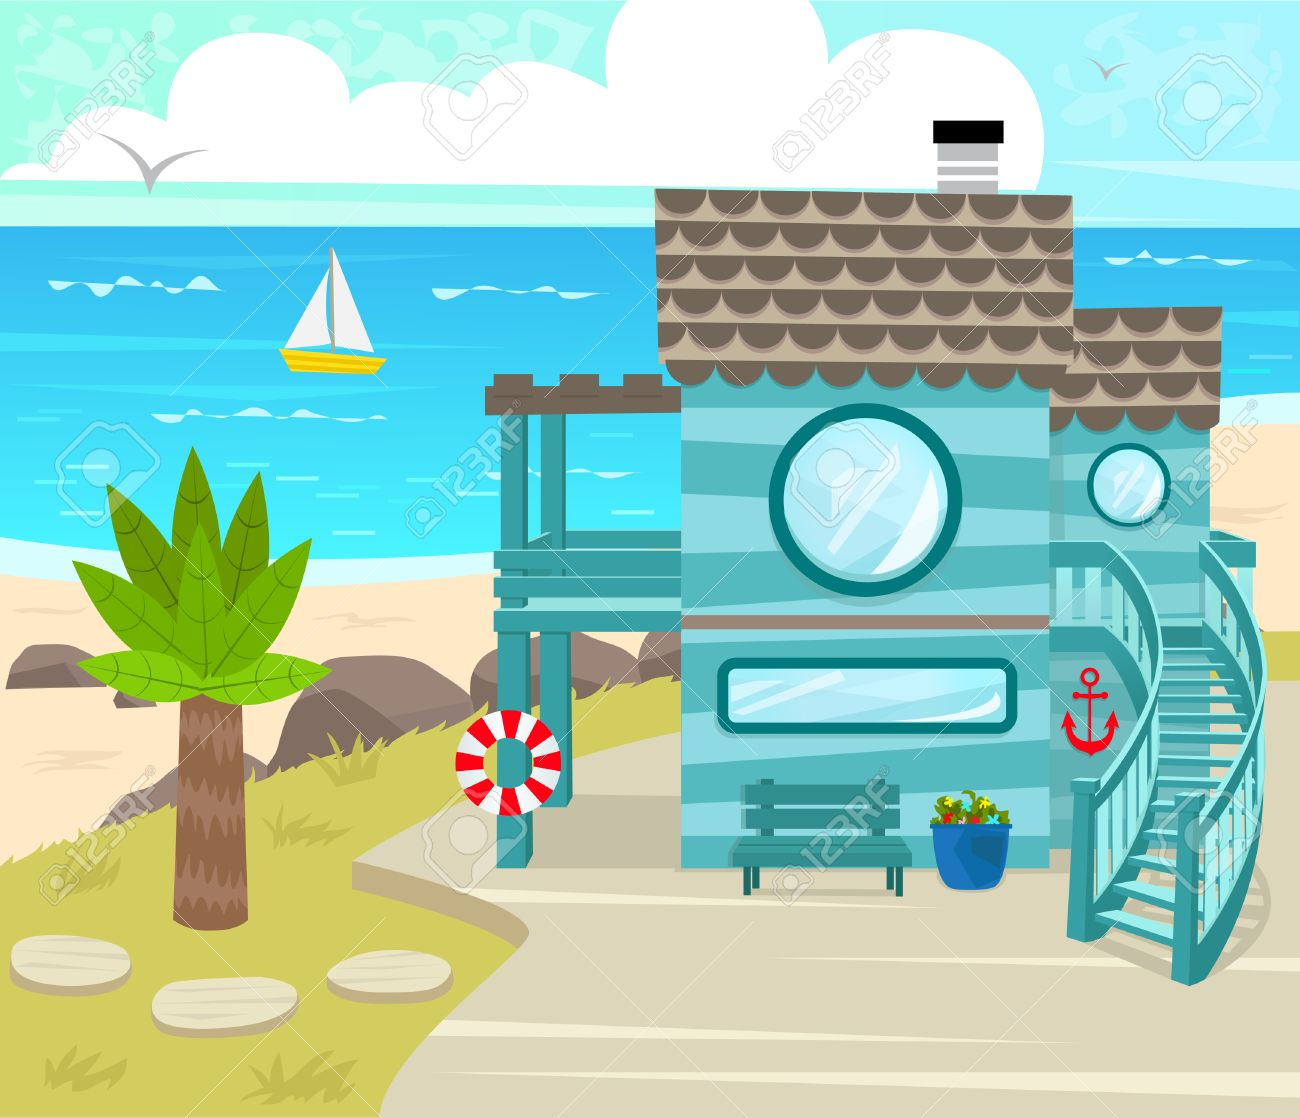 Beach House Cartoon Beach House In Front Of An Ocean View Eps10 Royalty Free Cliparts Vectors And Stock Illustration Image 41841219 Romantic cartoon style nature landscape. beach house cartoon beach house in front of an ocean view eps10